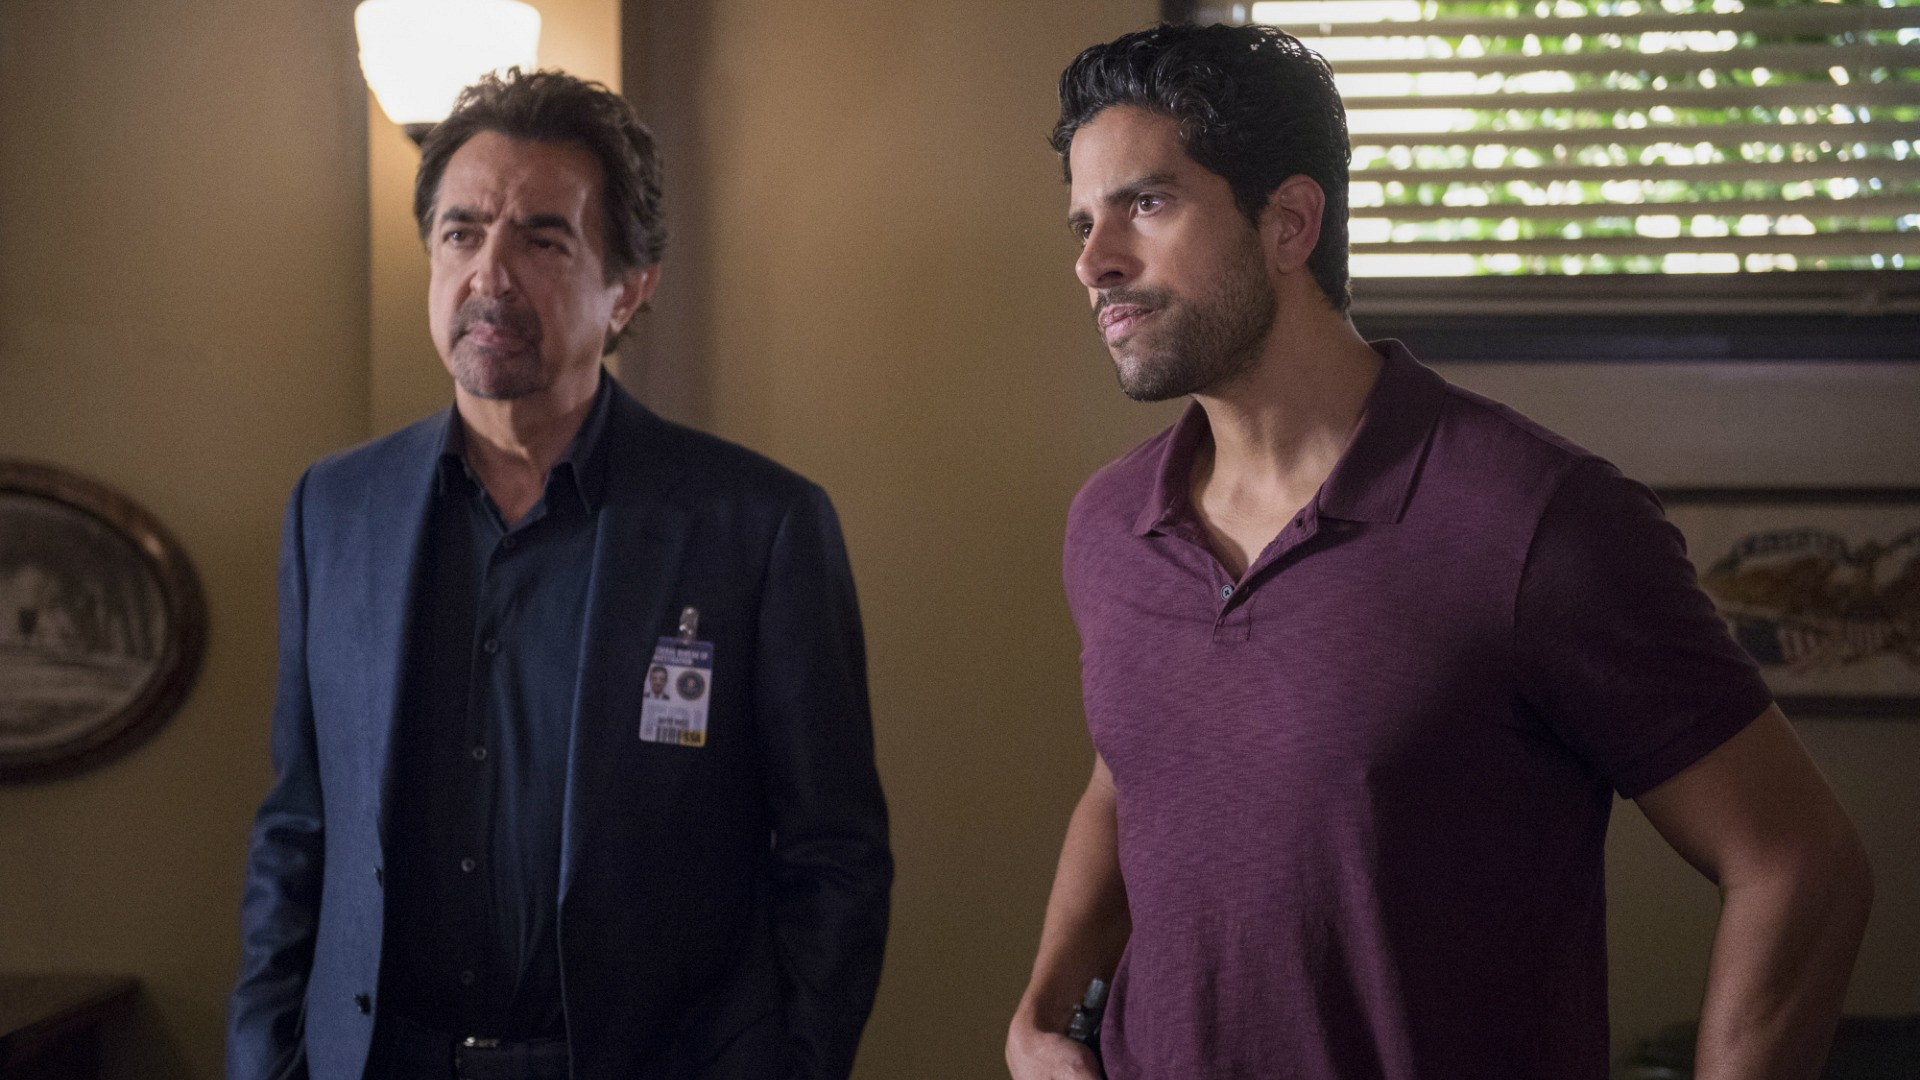 David Rossi and Luke Alvez discuss the profile.